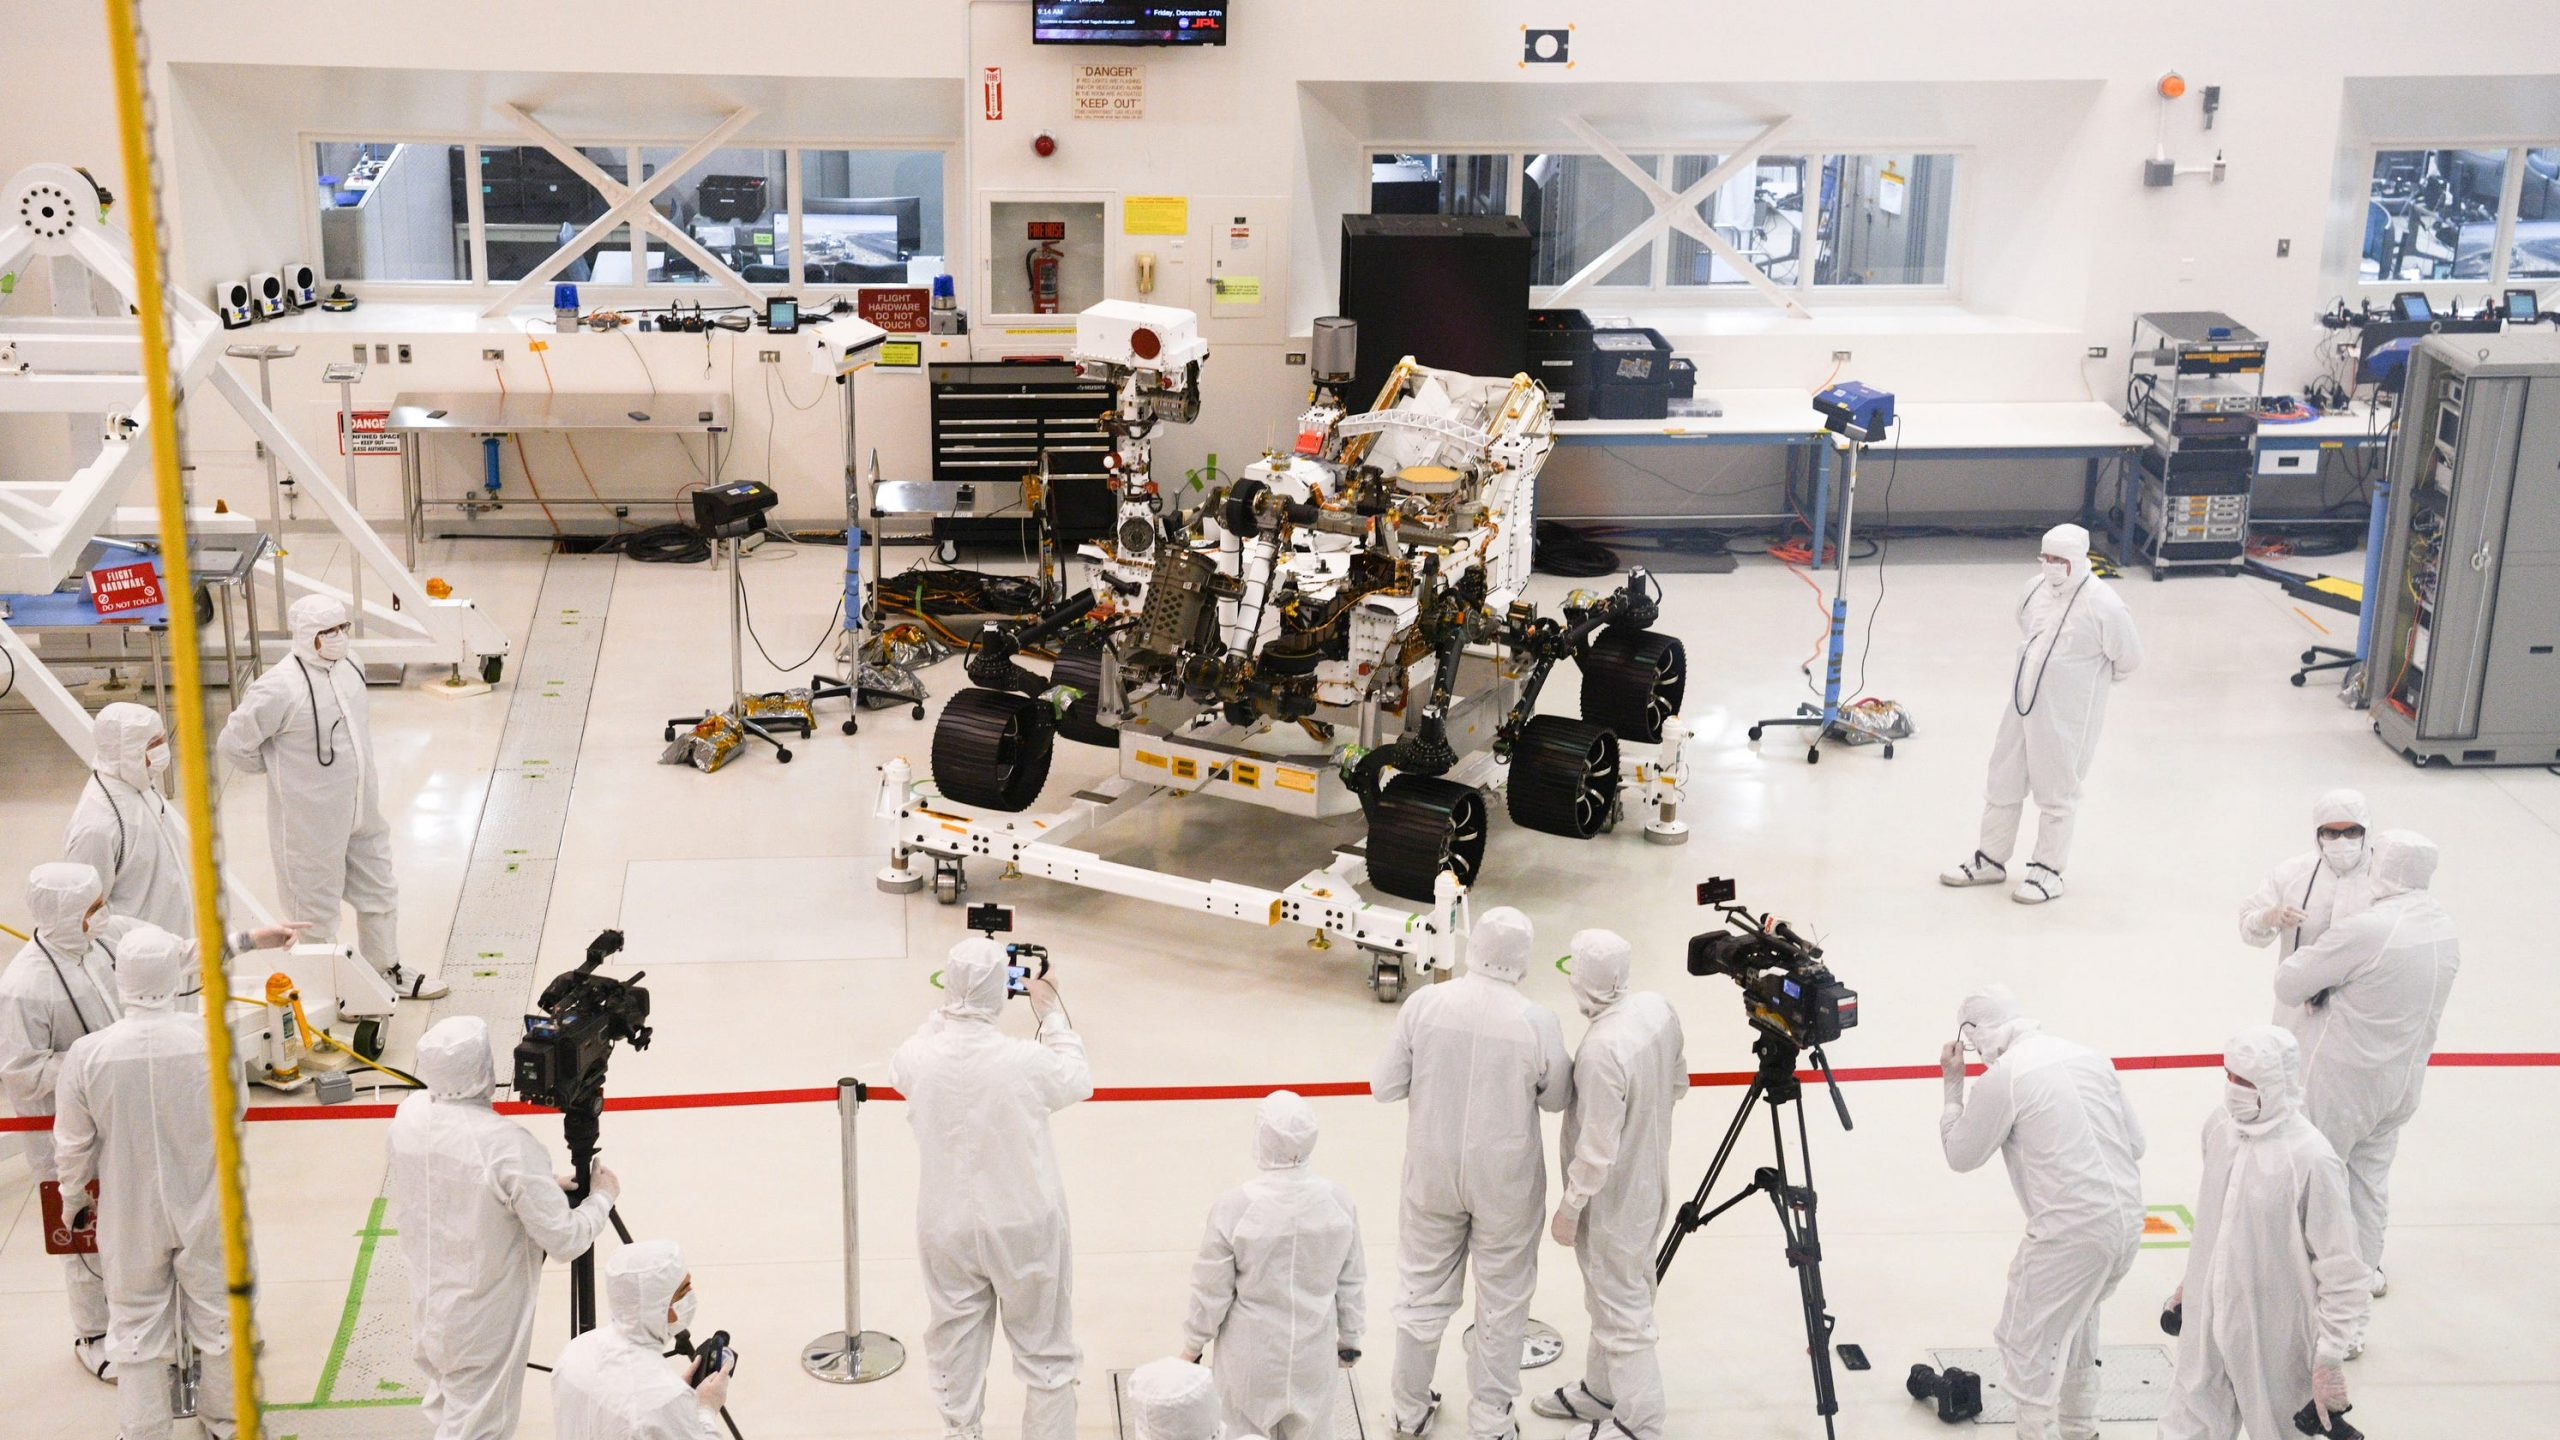 'Are we alone in the universe?' NASA's 2020 Mars rover, a $2.5B robotic astronaut, is being built to help us find out